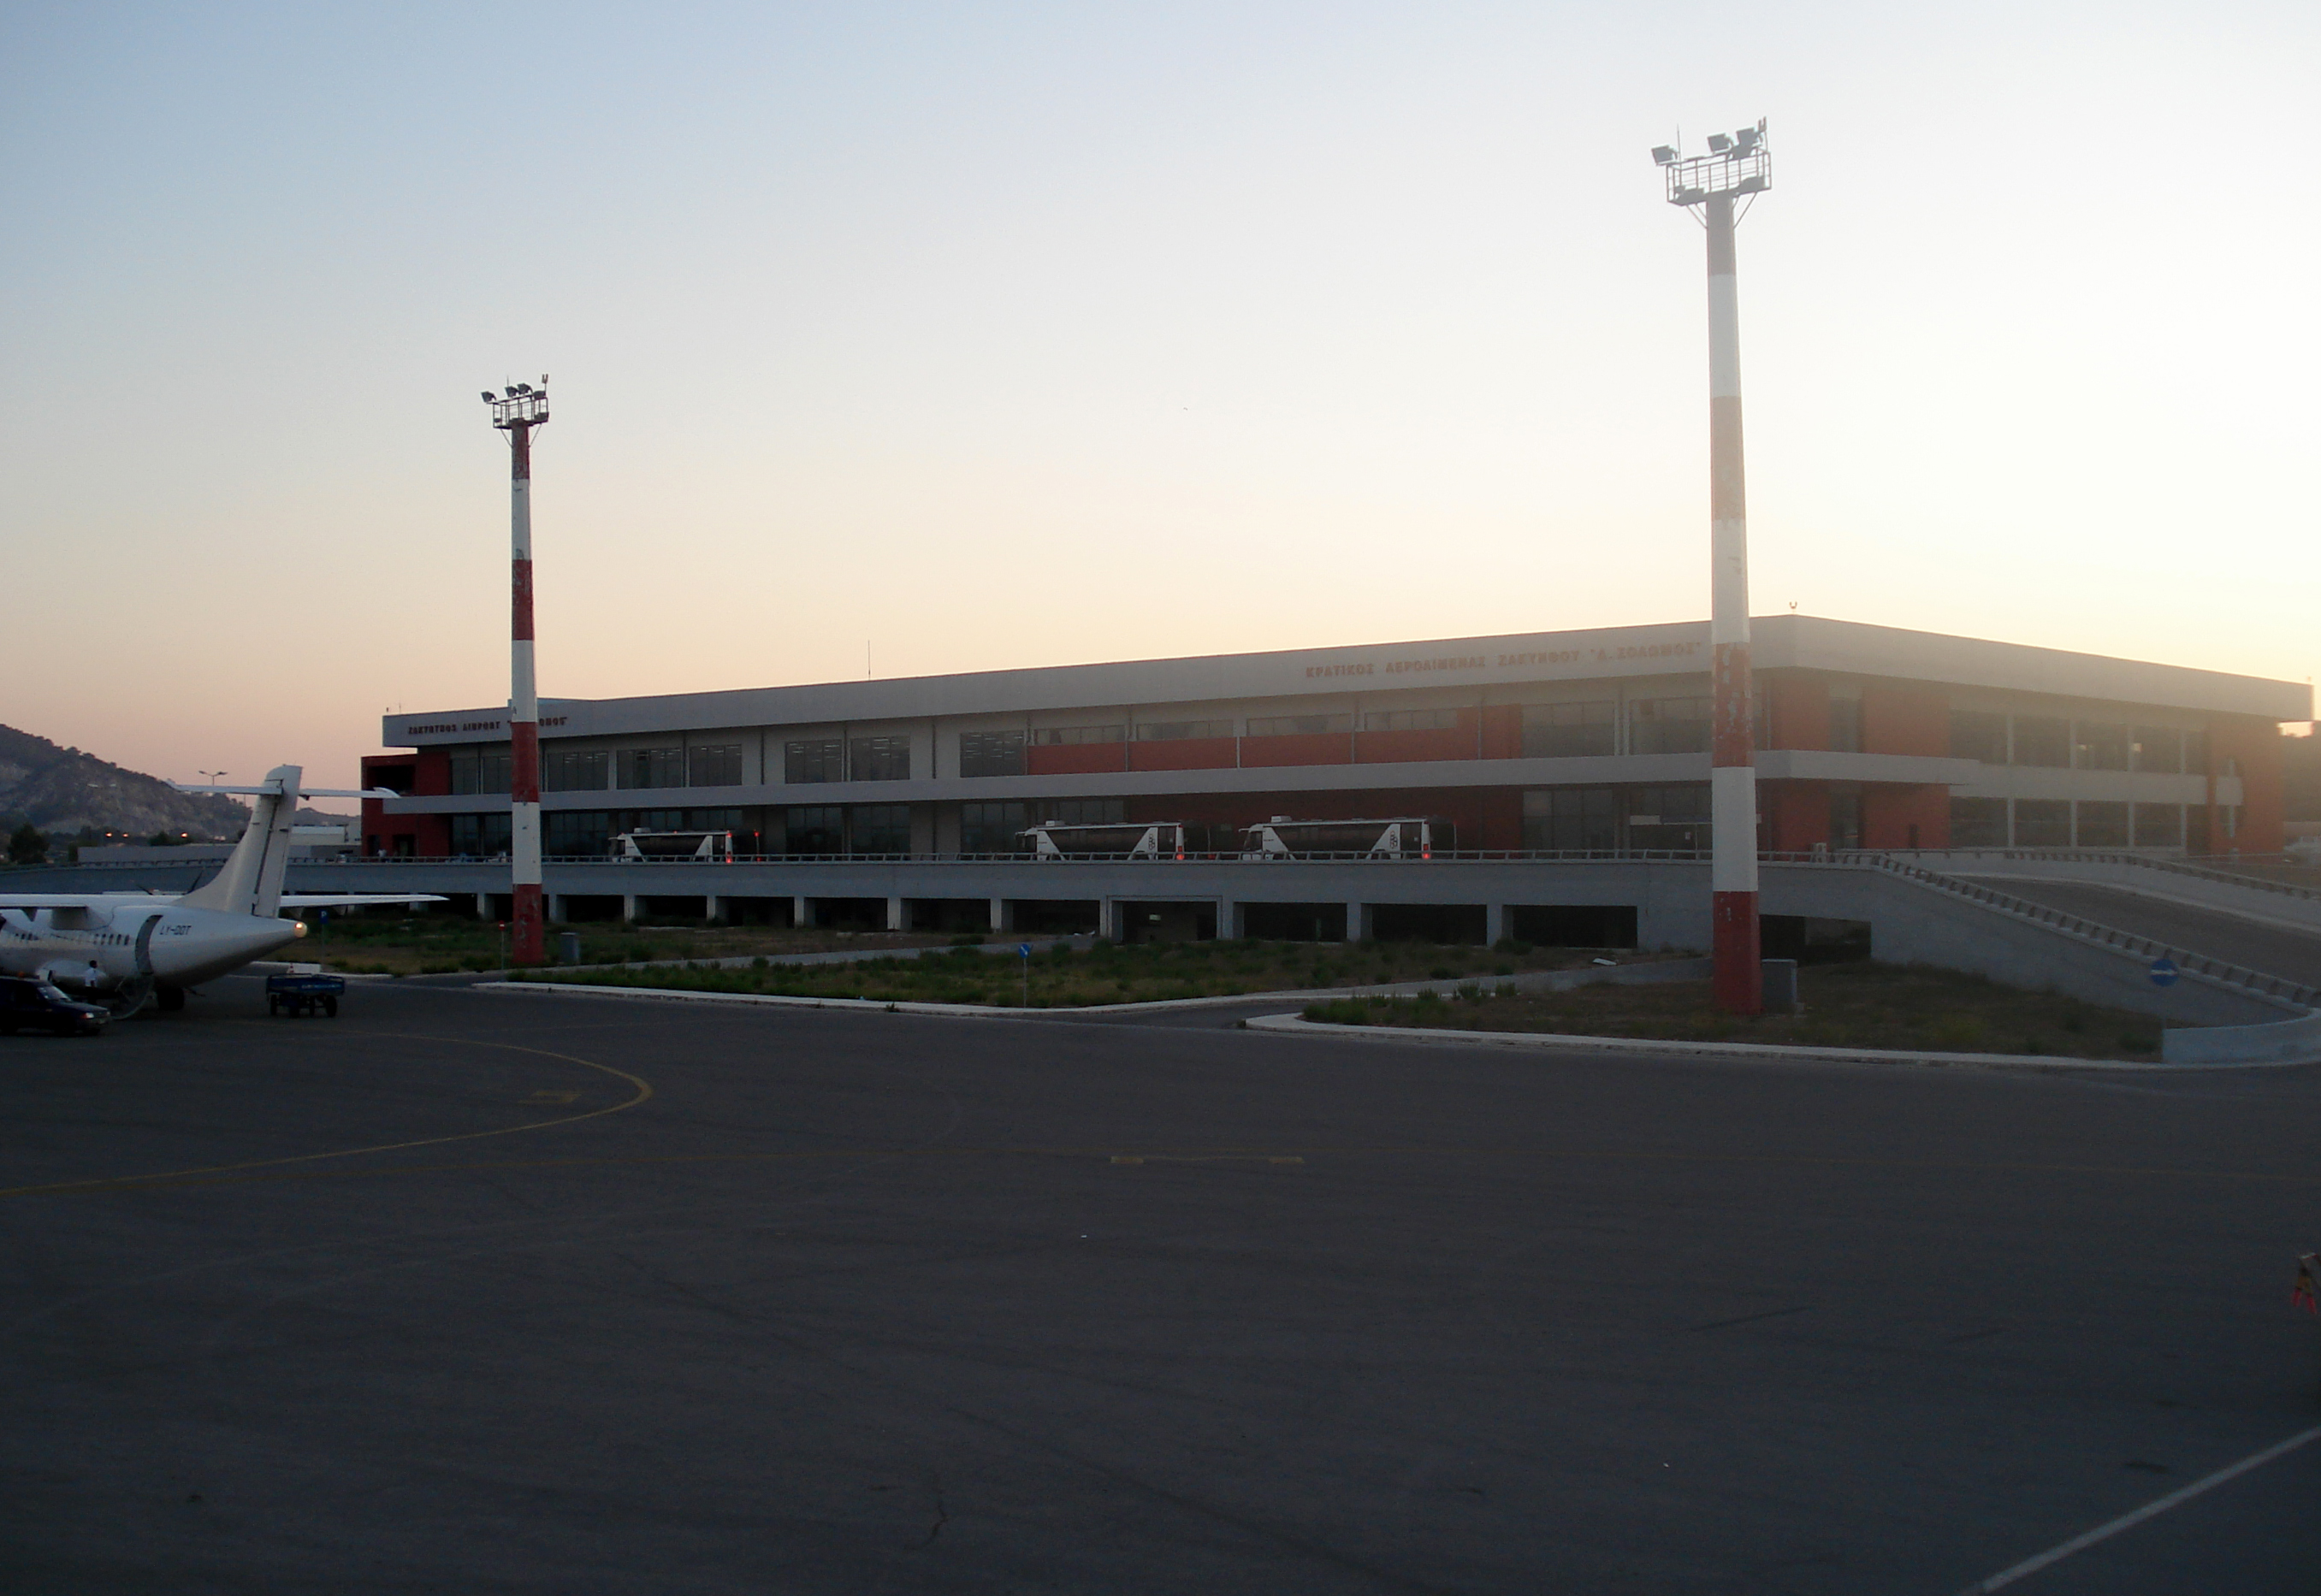 terminal_building_at_zakynthos_airport